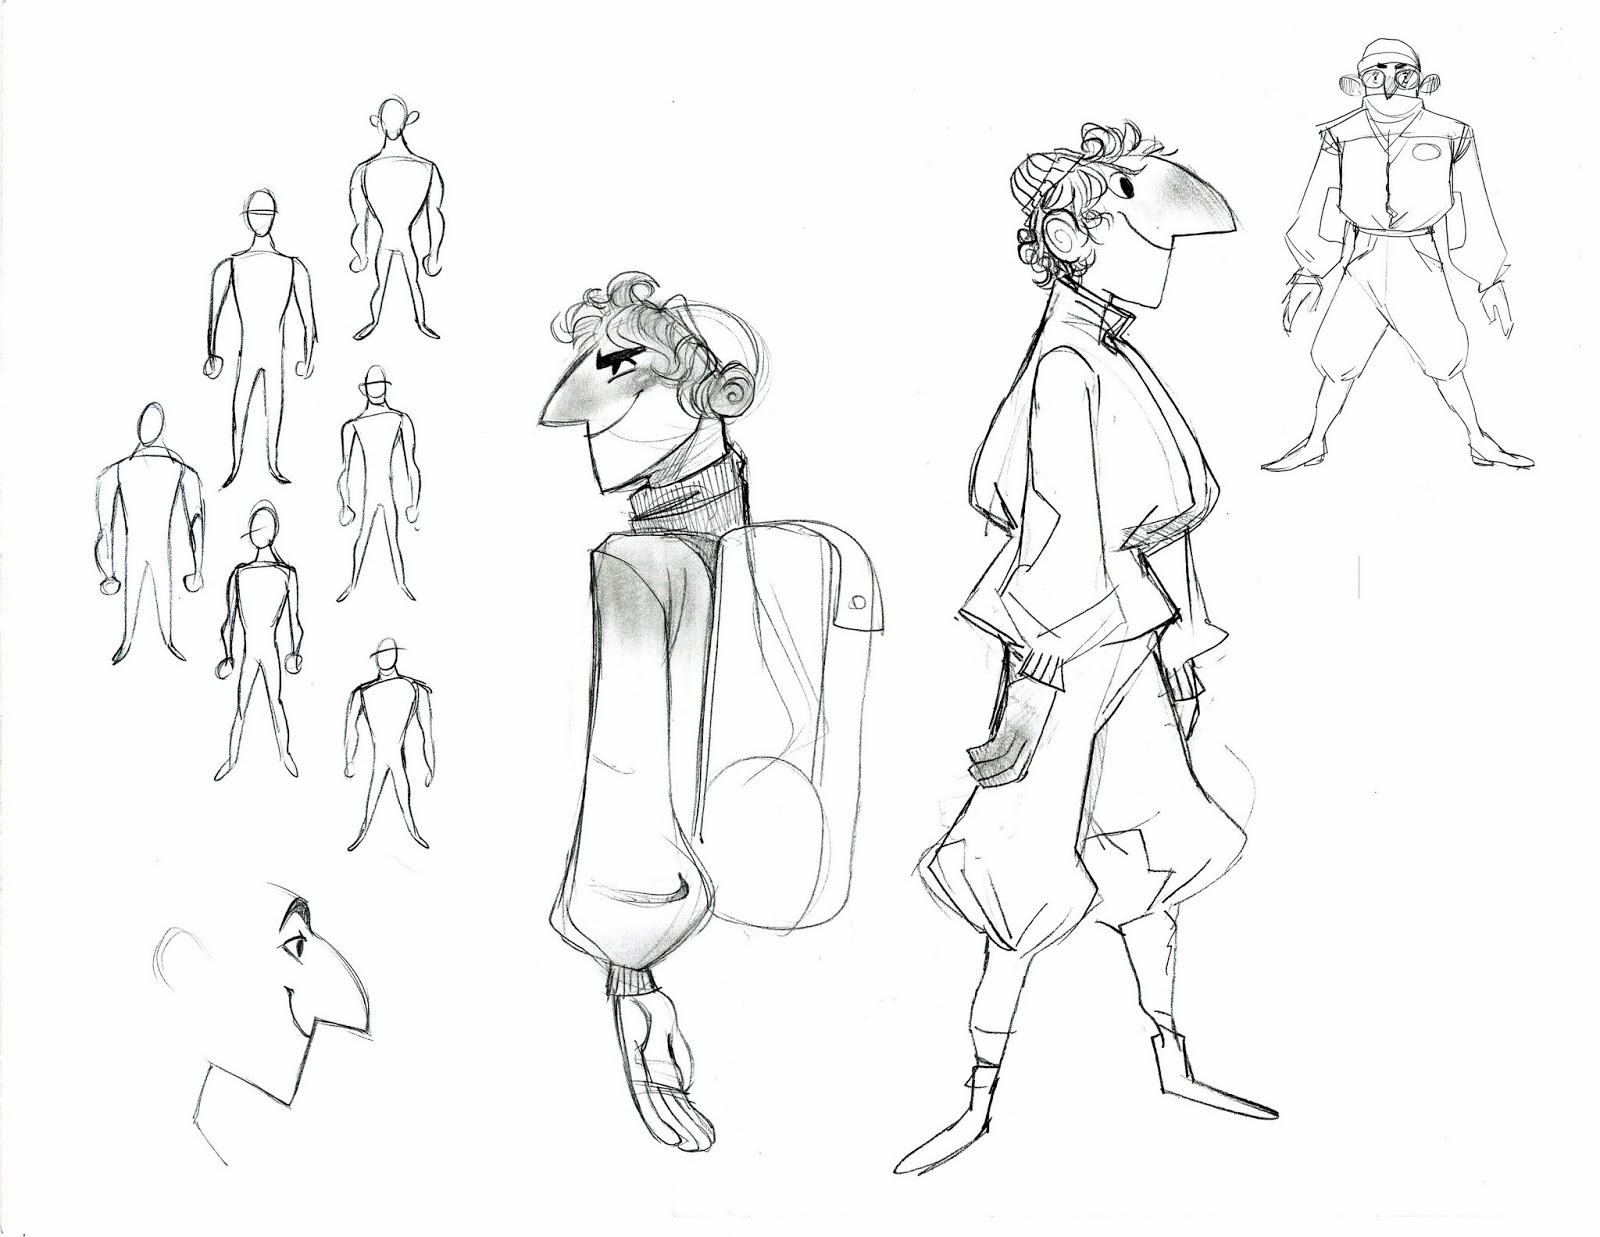 mountaineer sketch templates